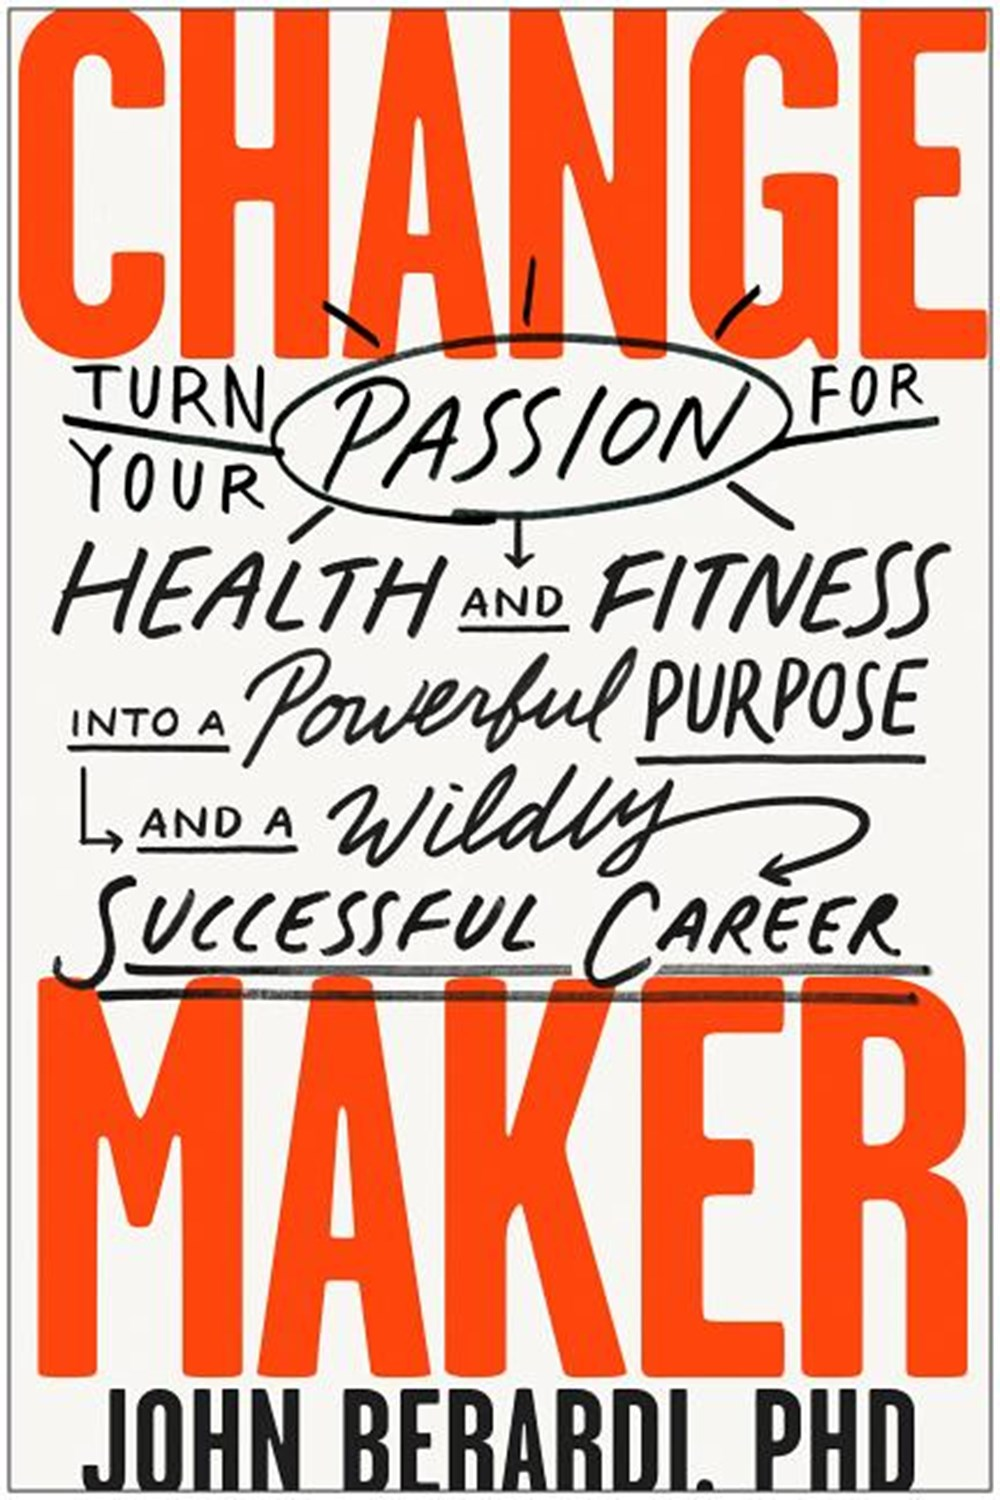 Change Maker: Turn Your Passion for Health and Fitness Into a Powerful Purpose and a Wildly Successf